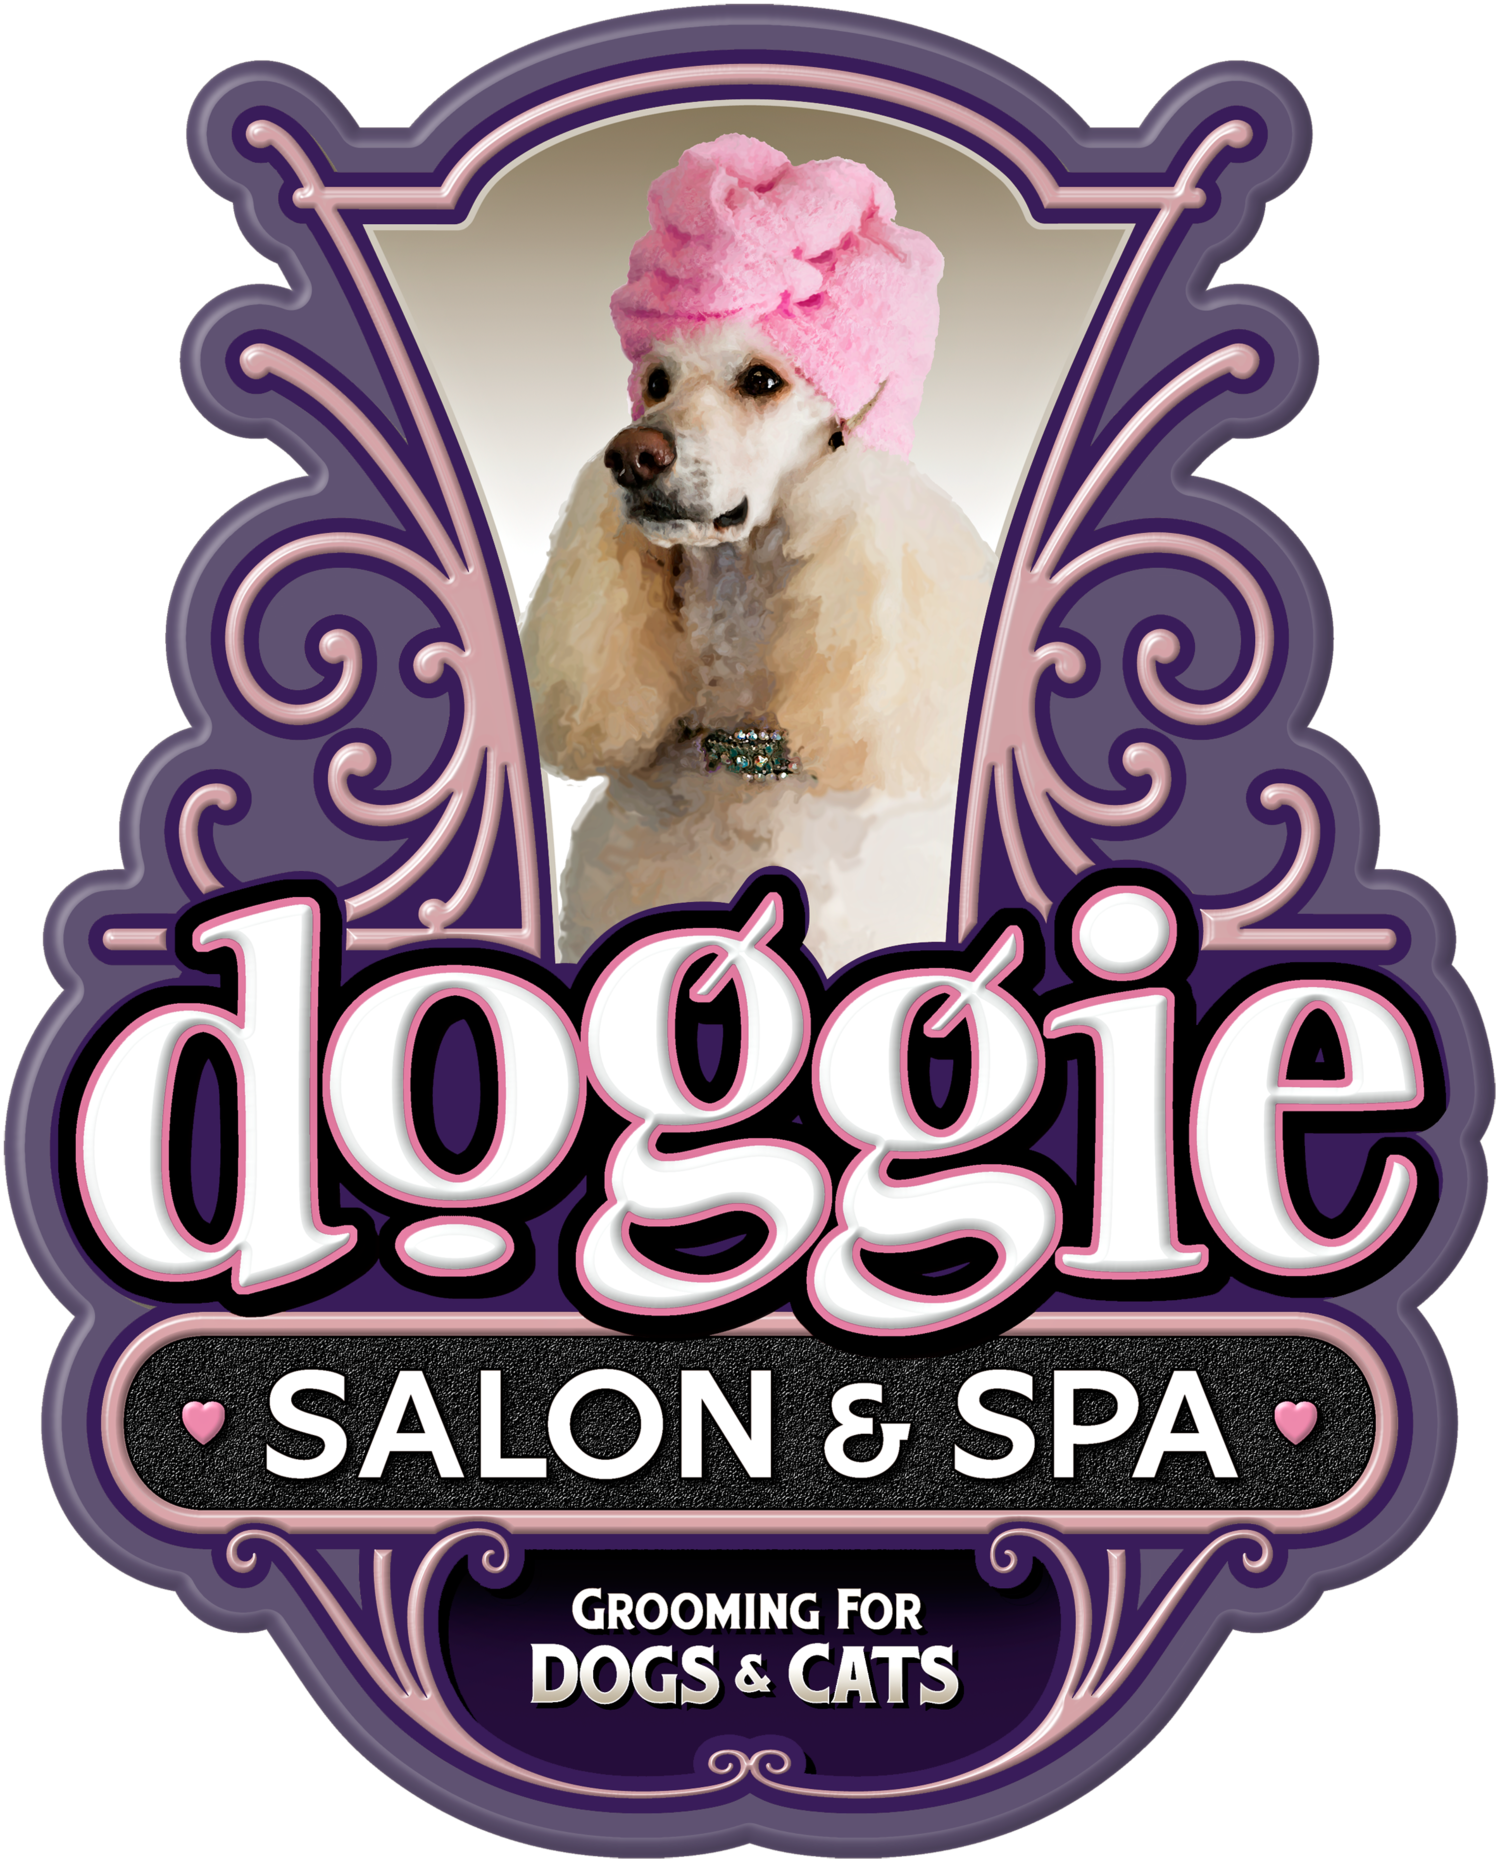 Doggie Salon and Spa